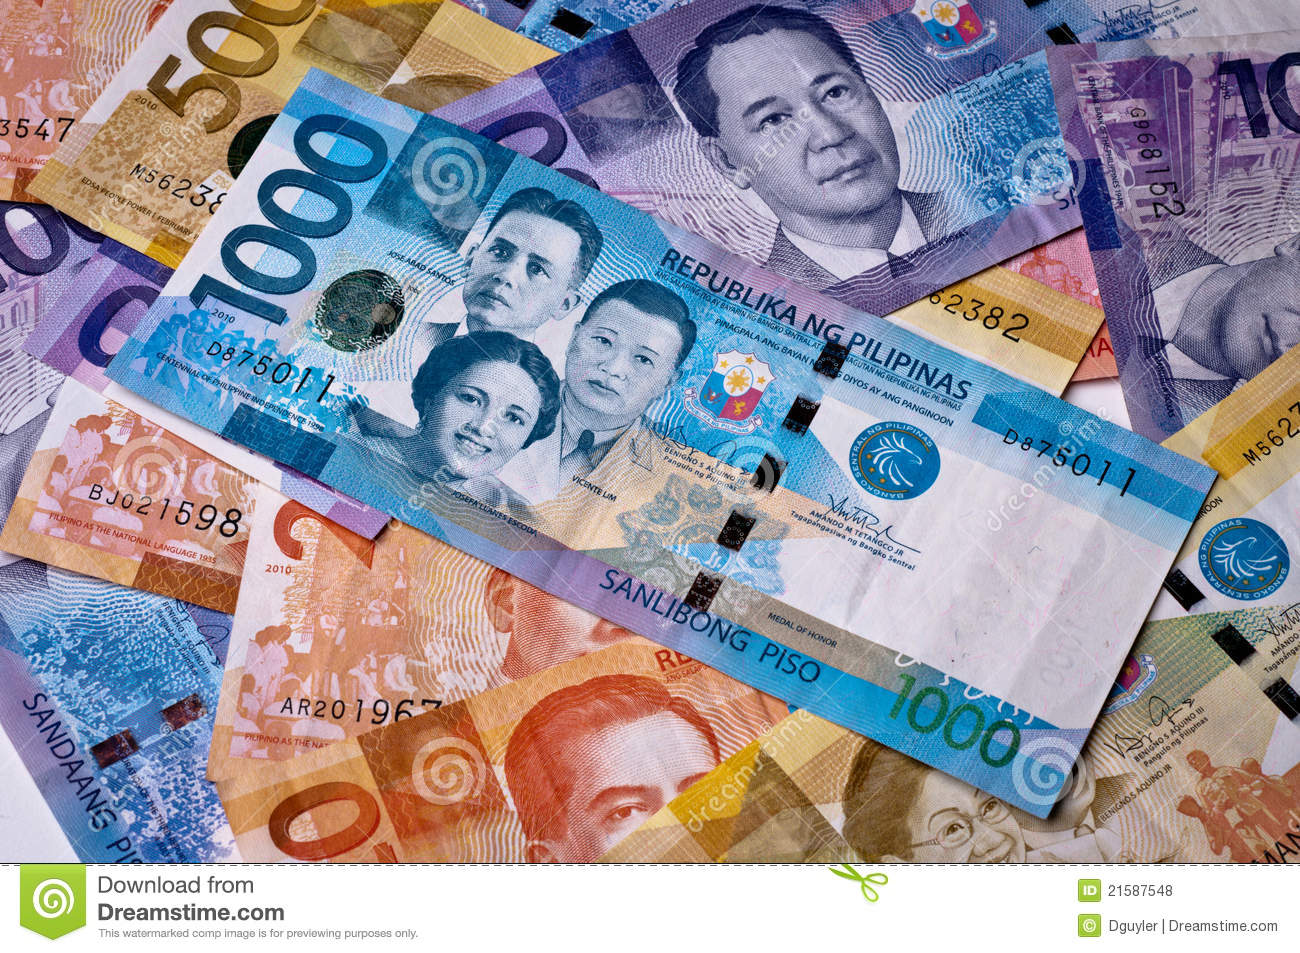 effects of a strong or weak philippine peso currency essay